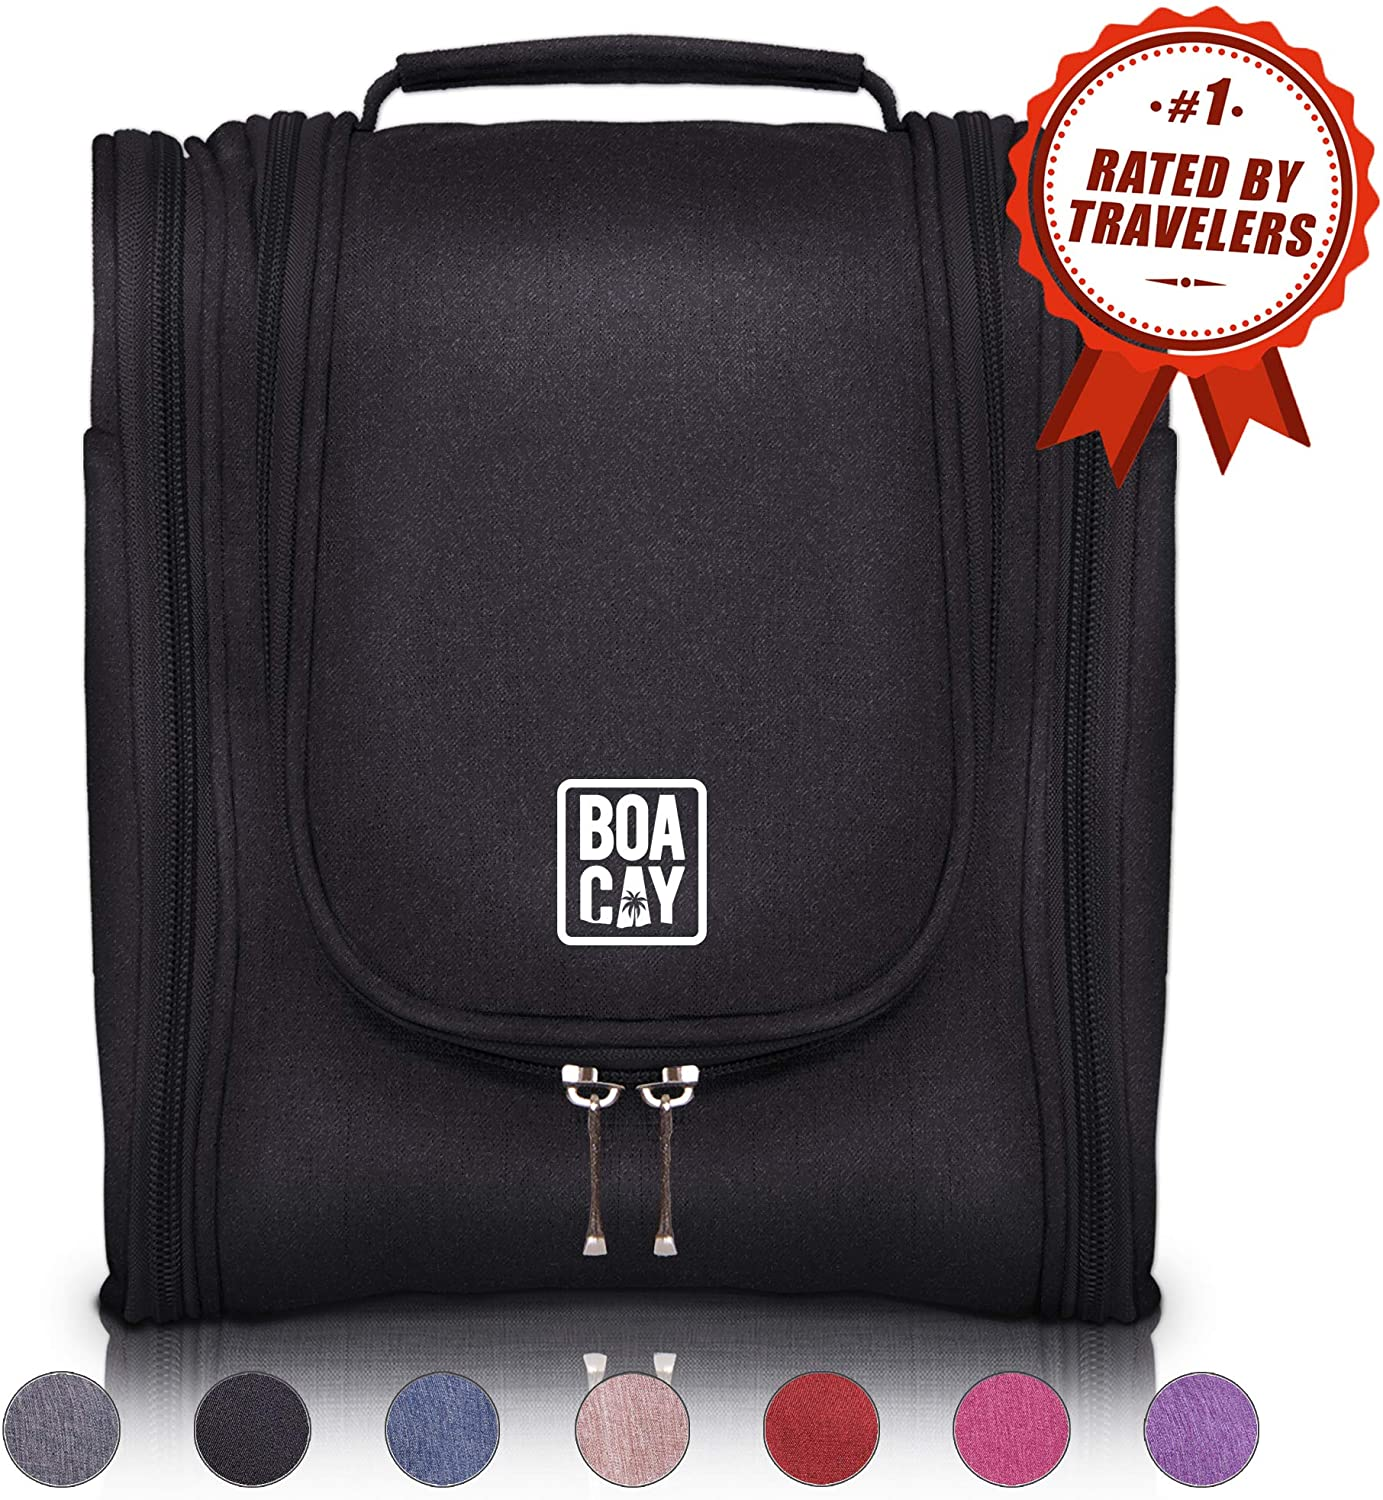 Hanging Travel Toiletry Bag from BOACAY